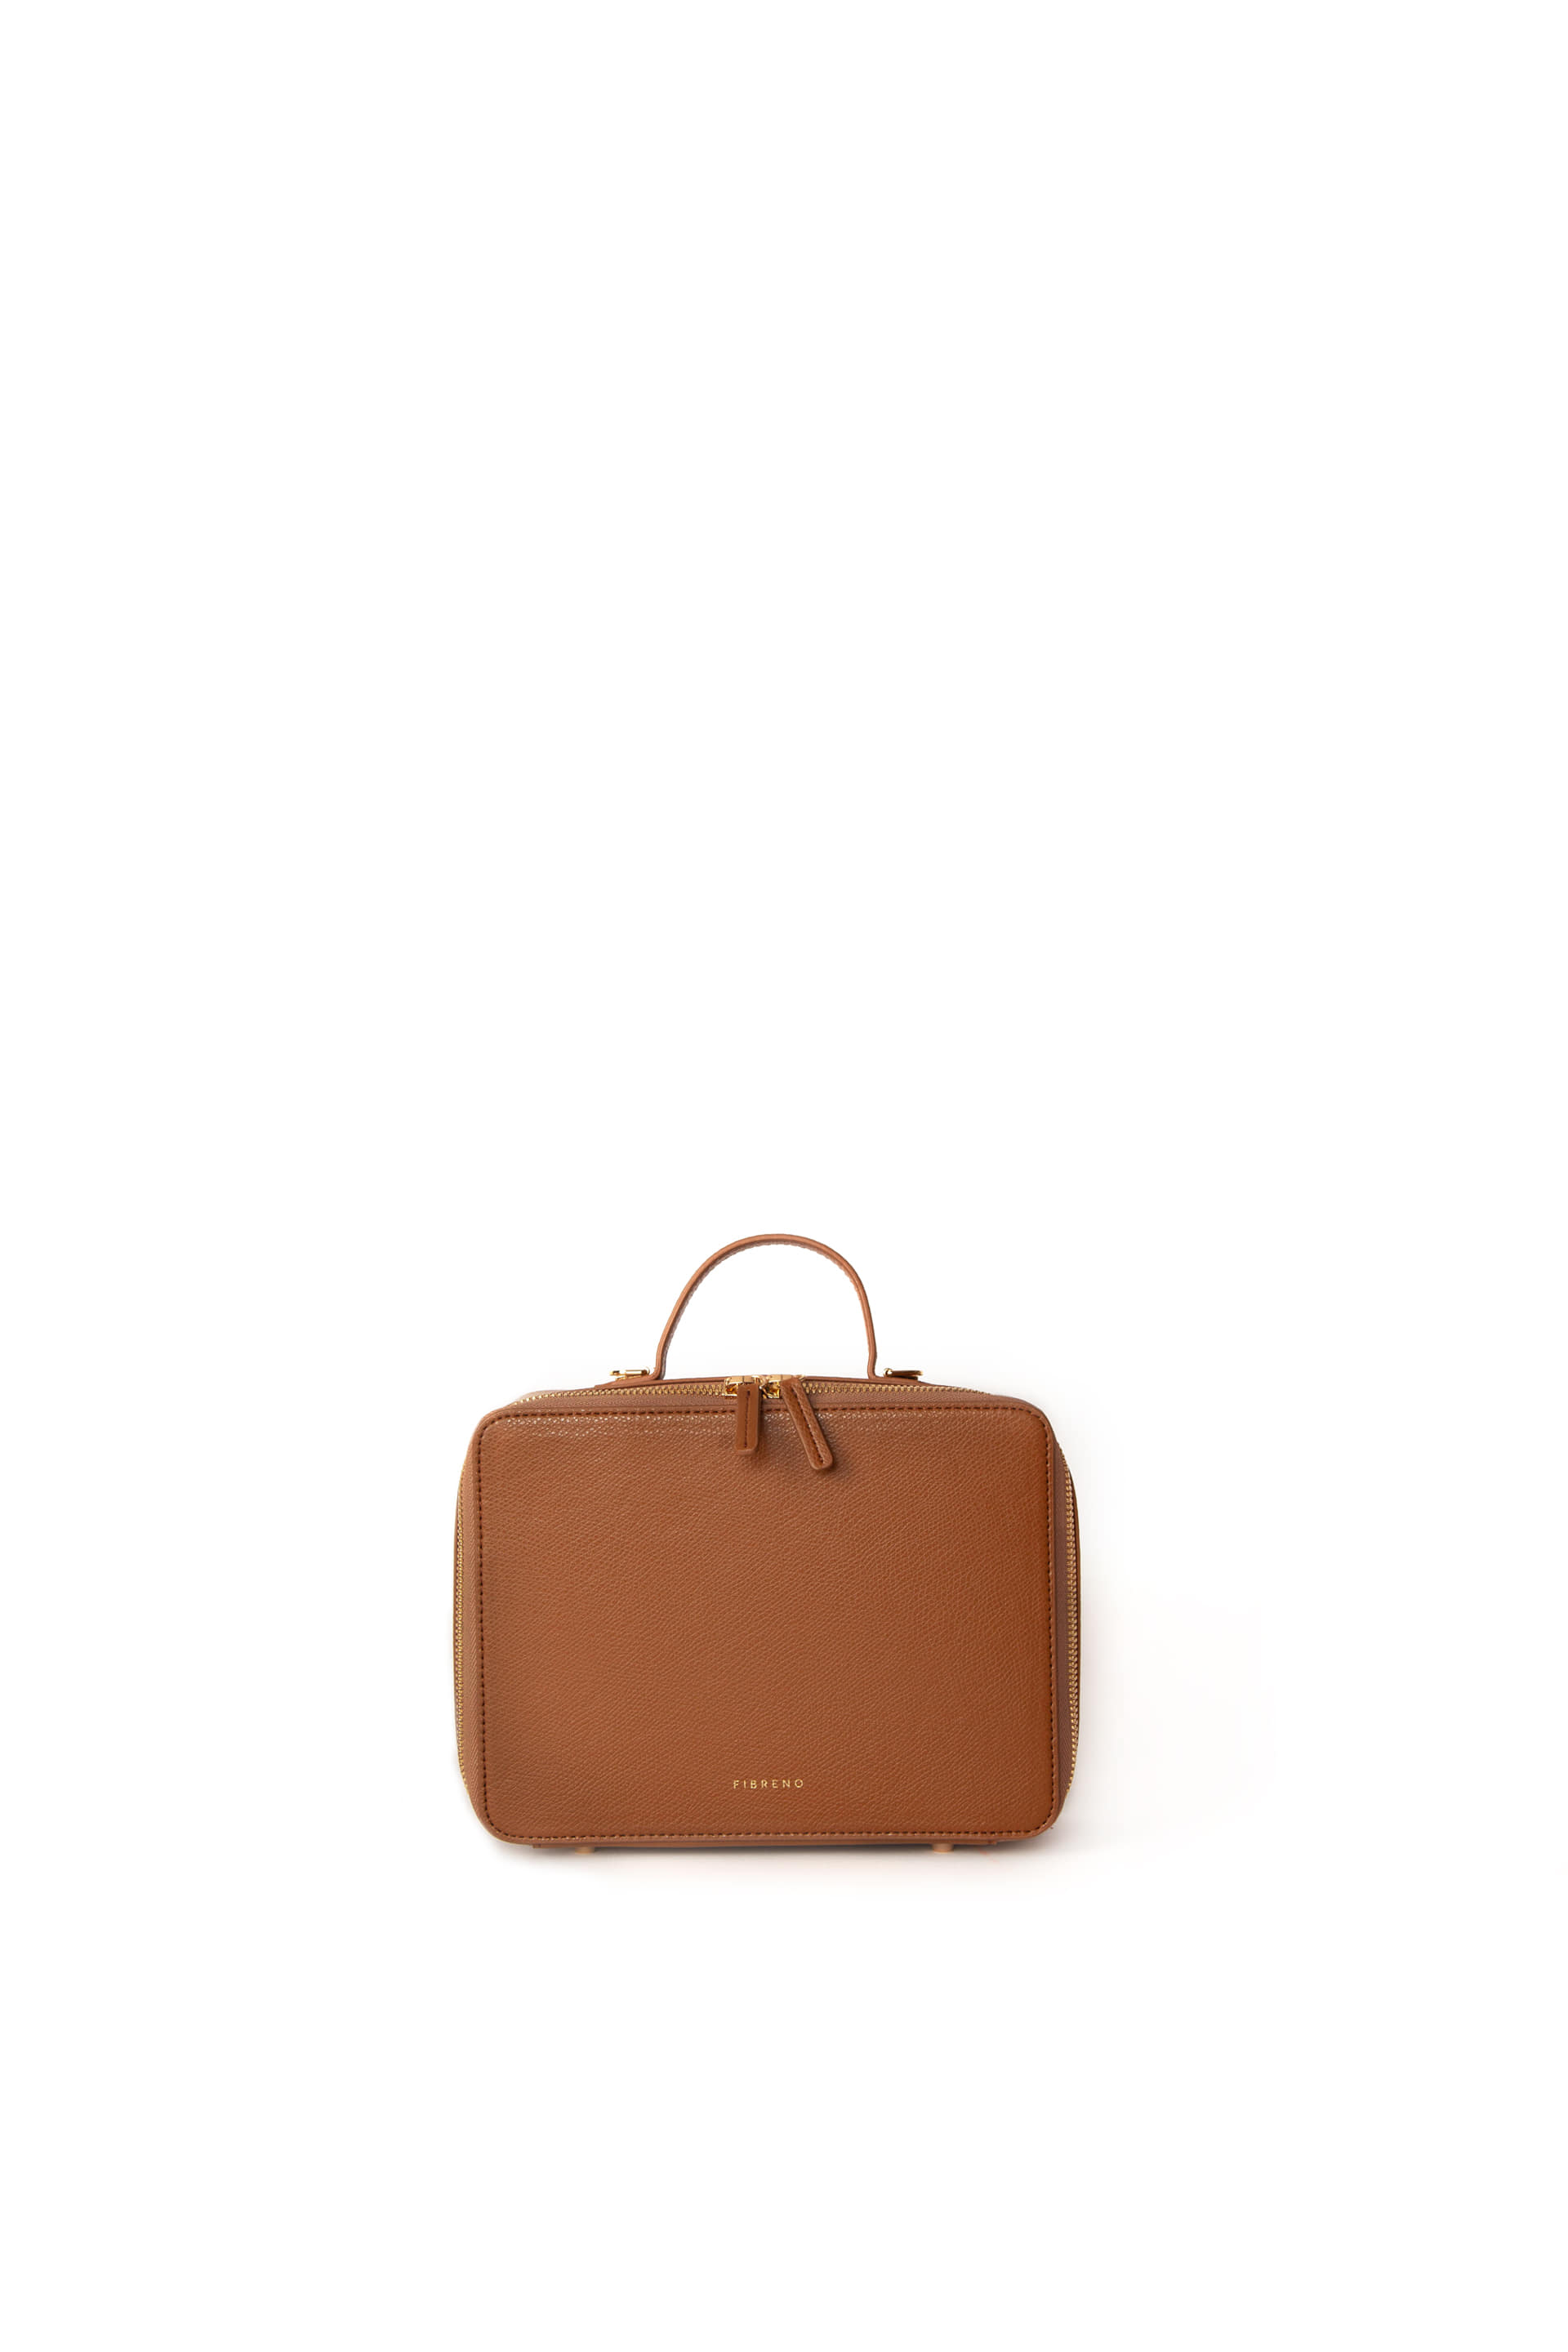 BB SQUARE BAG Brown (special edition)